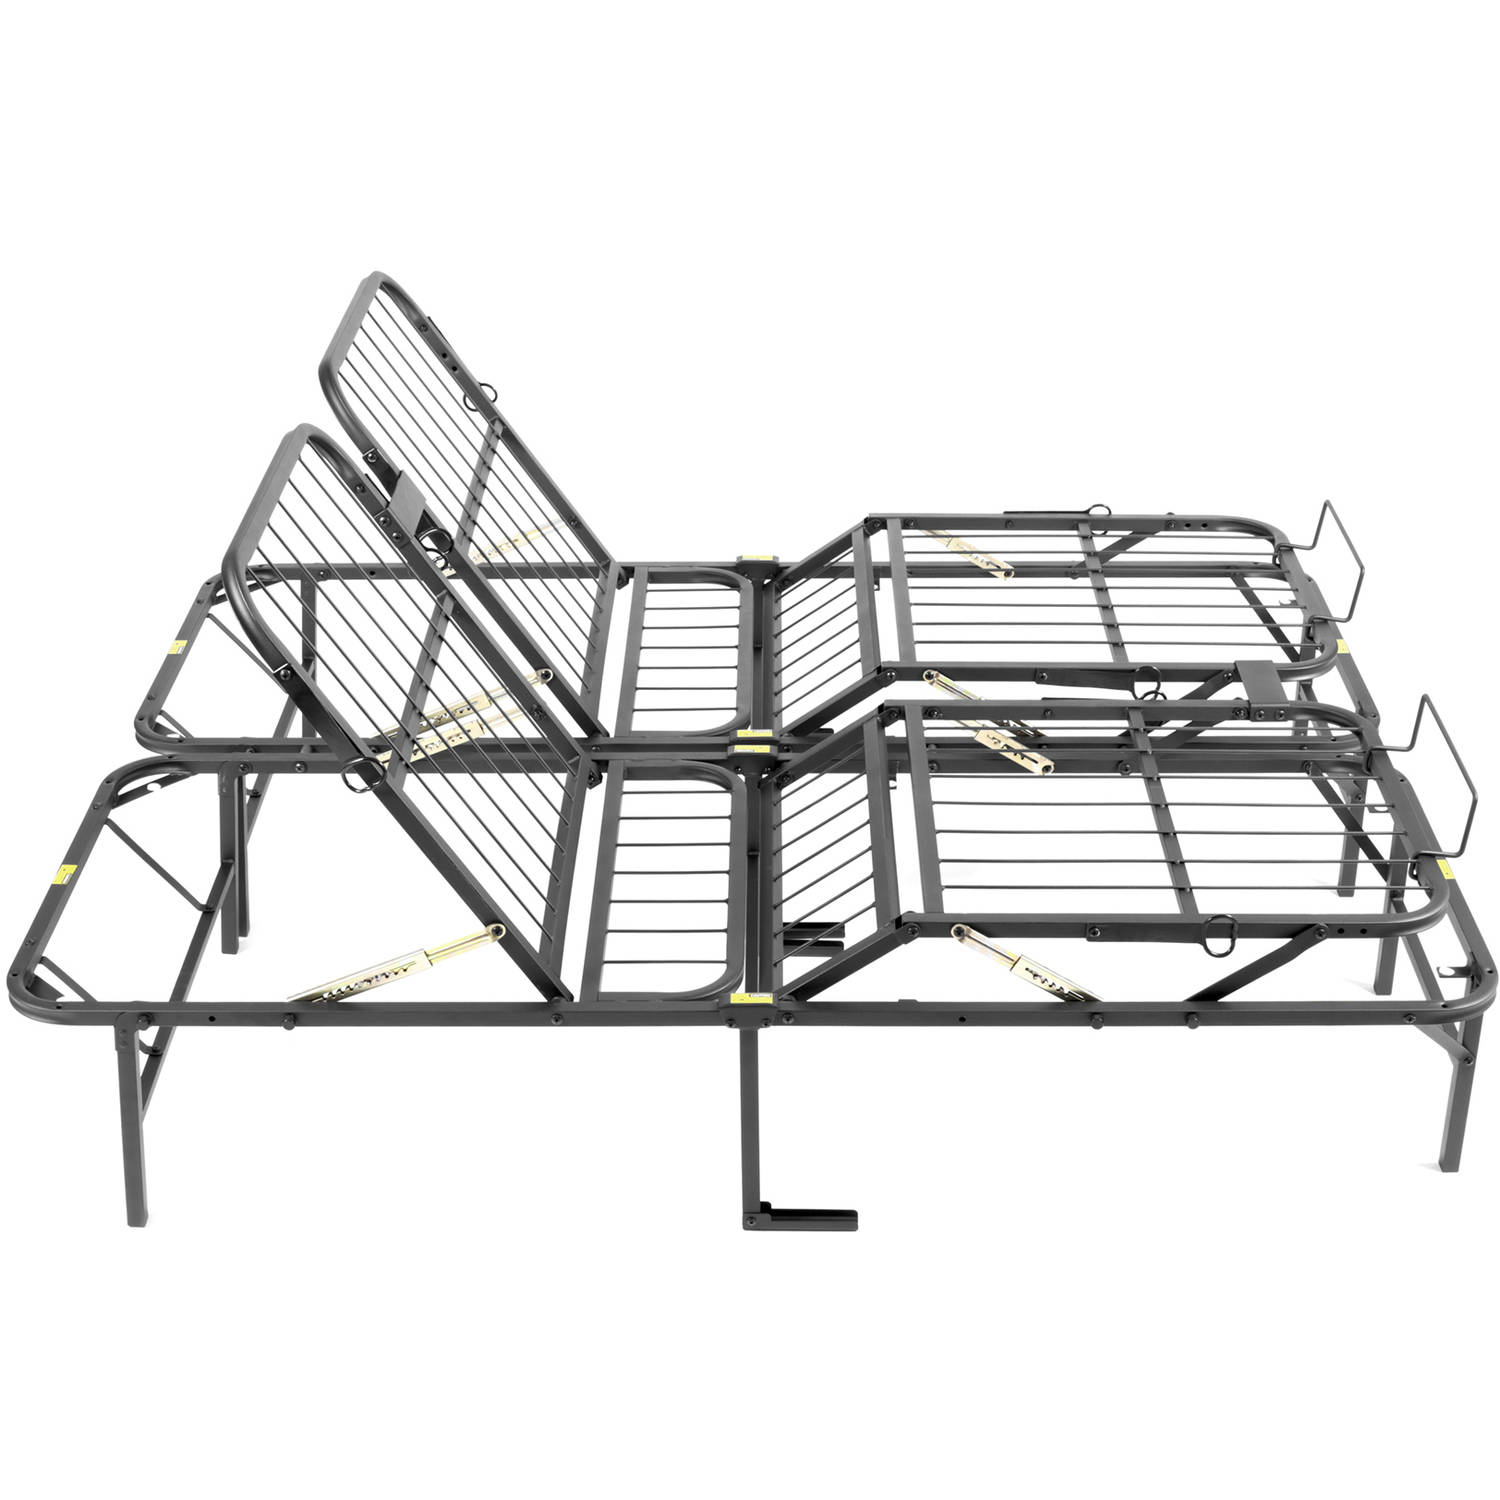 Simple Adjust Head and Foot Bed Frame - Size California King